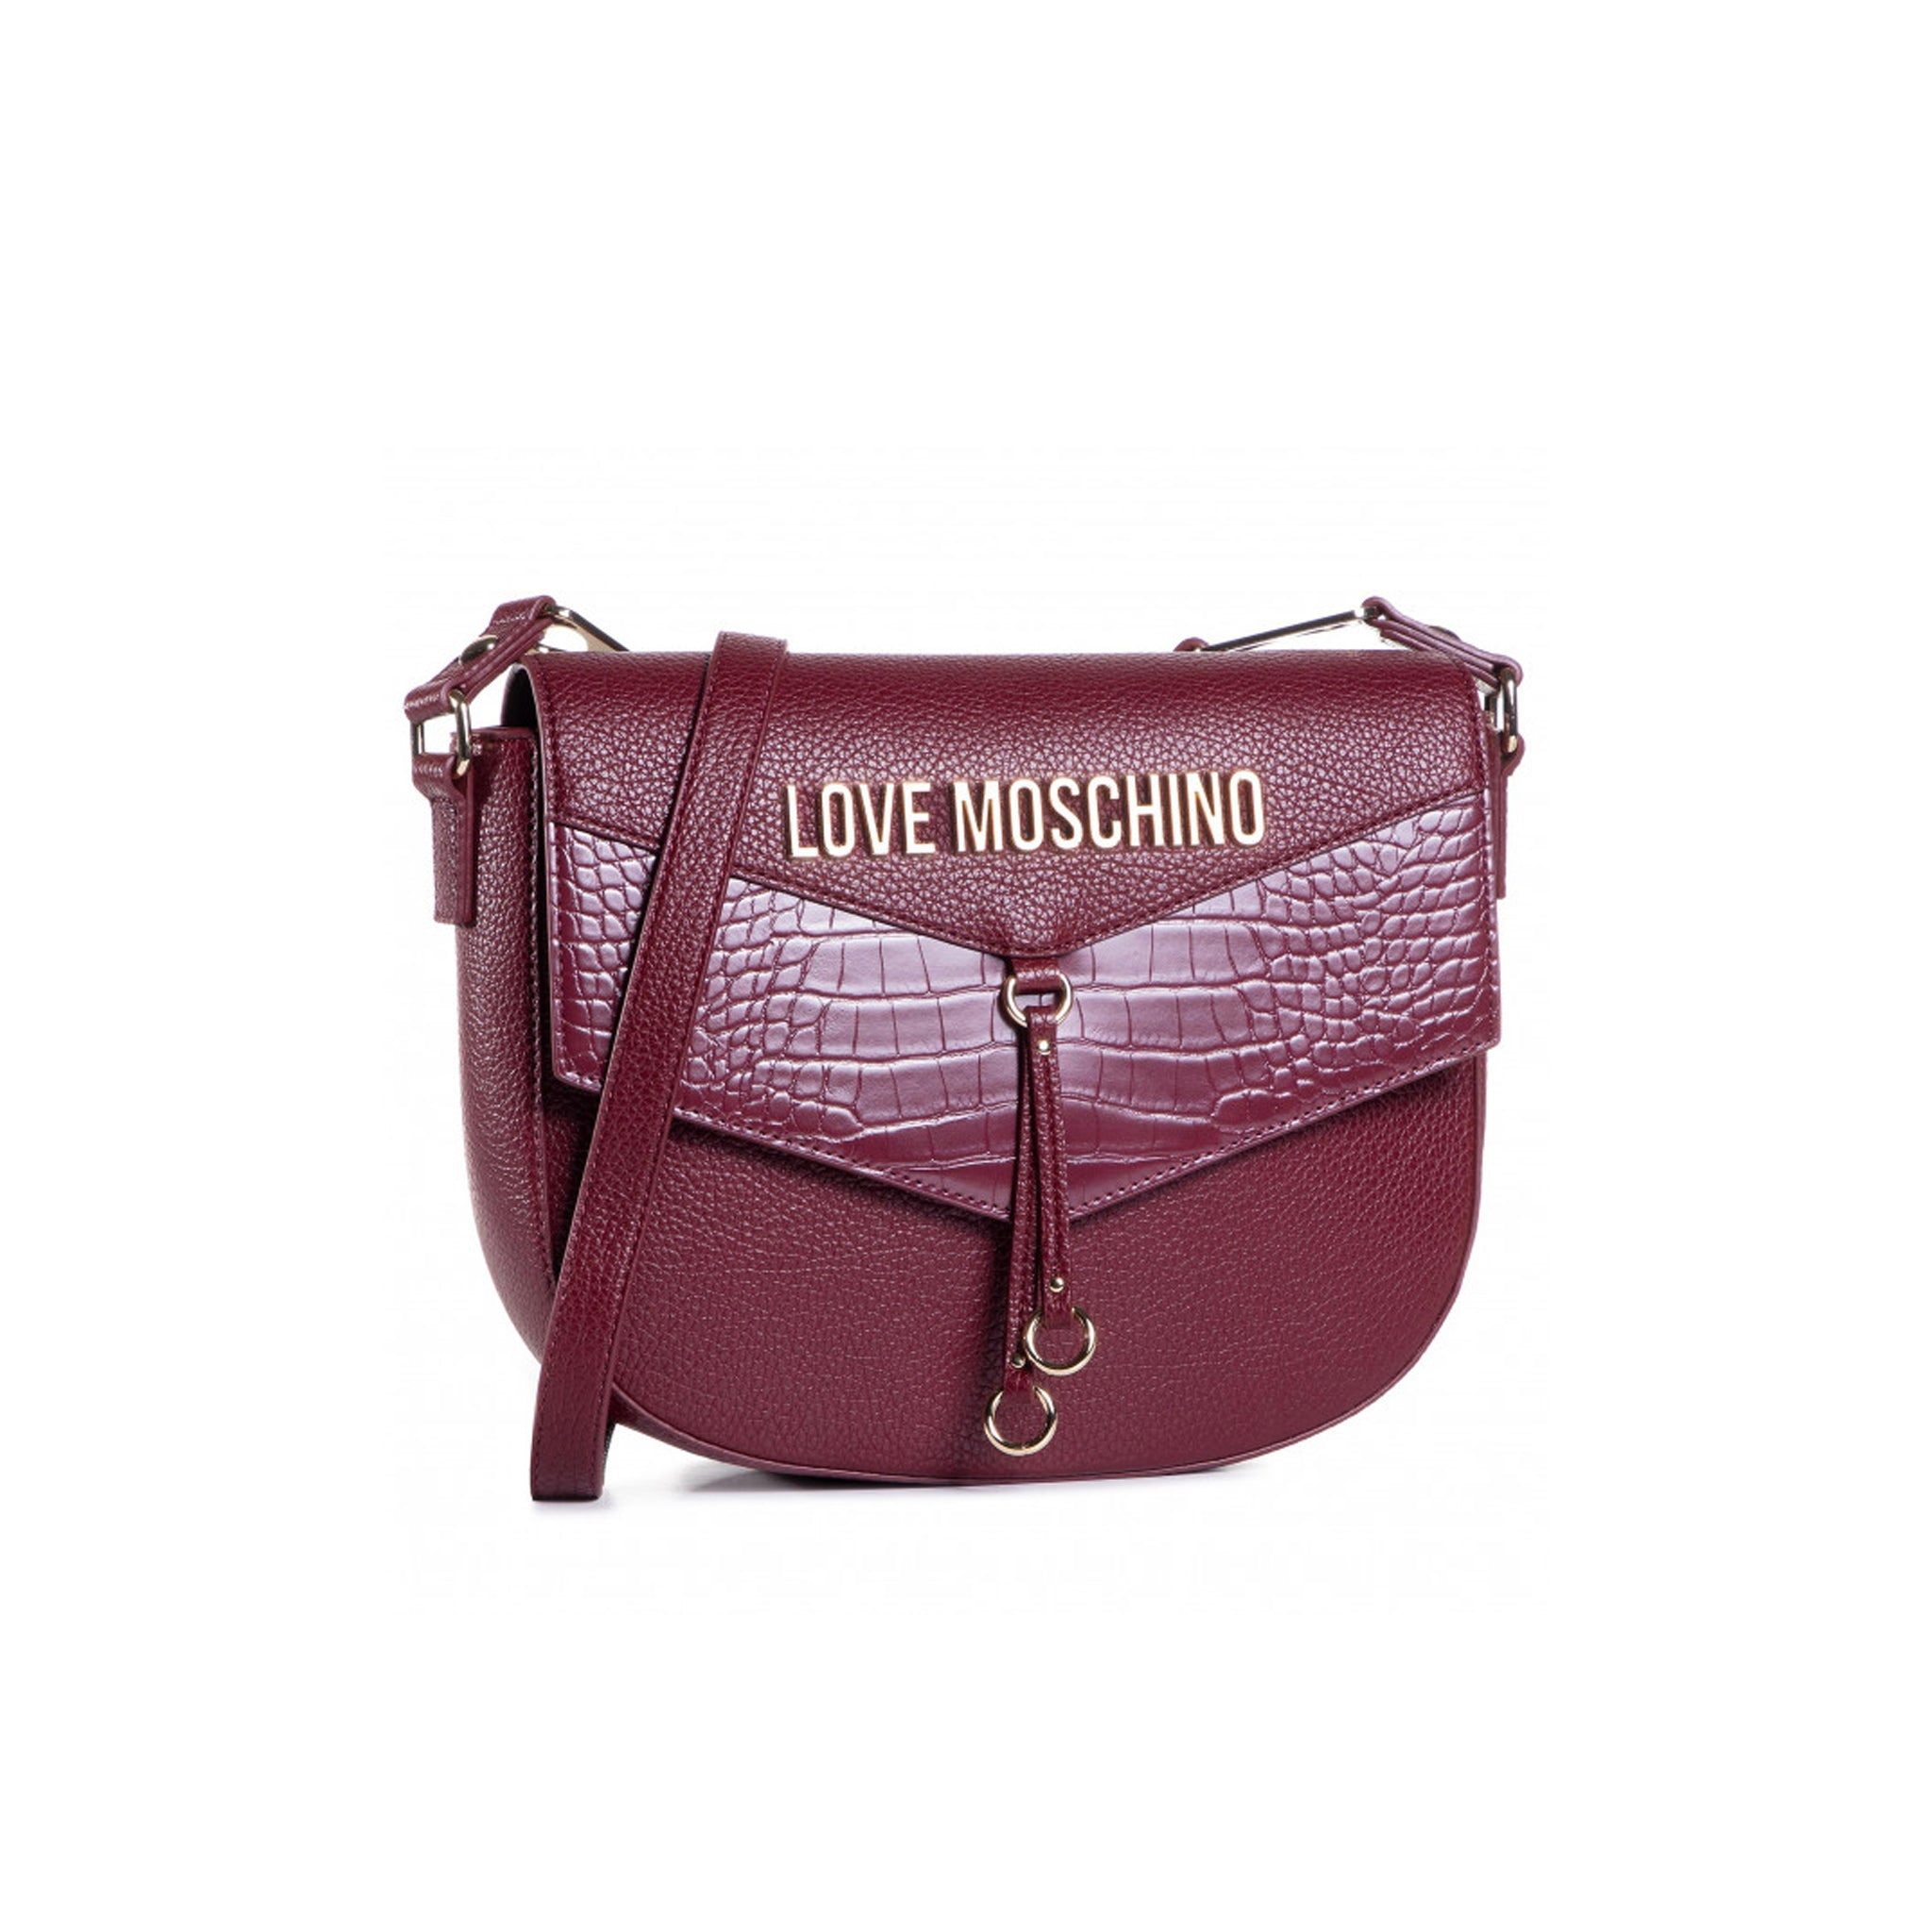 Love Moschino Croc Embossed Shoulder Bag